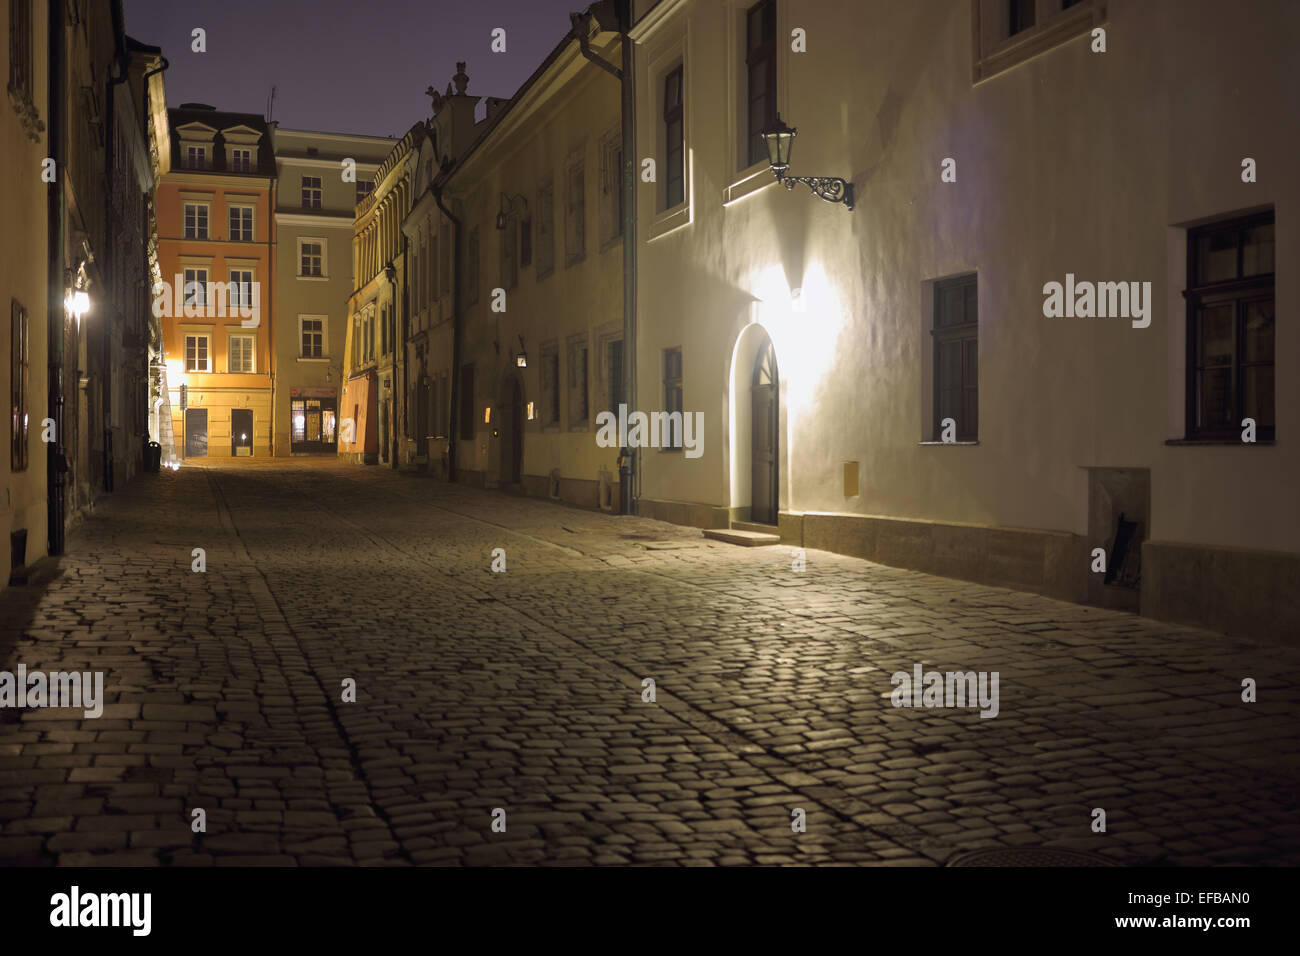 Streets of Krakow at nighttime - Stock Image